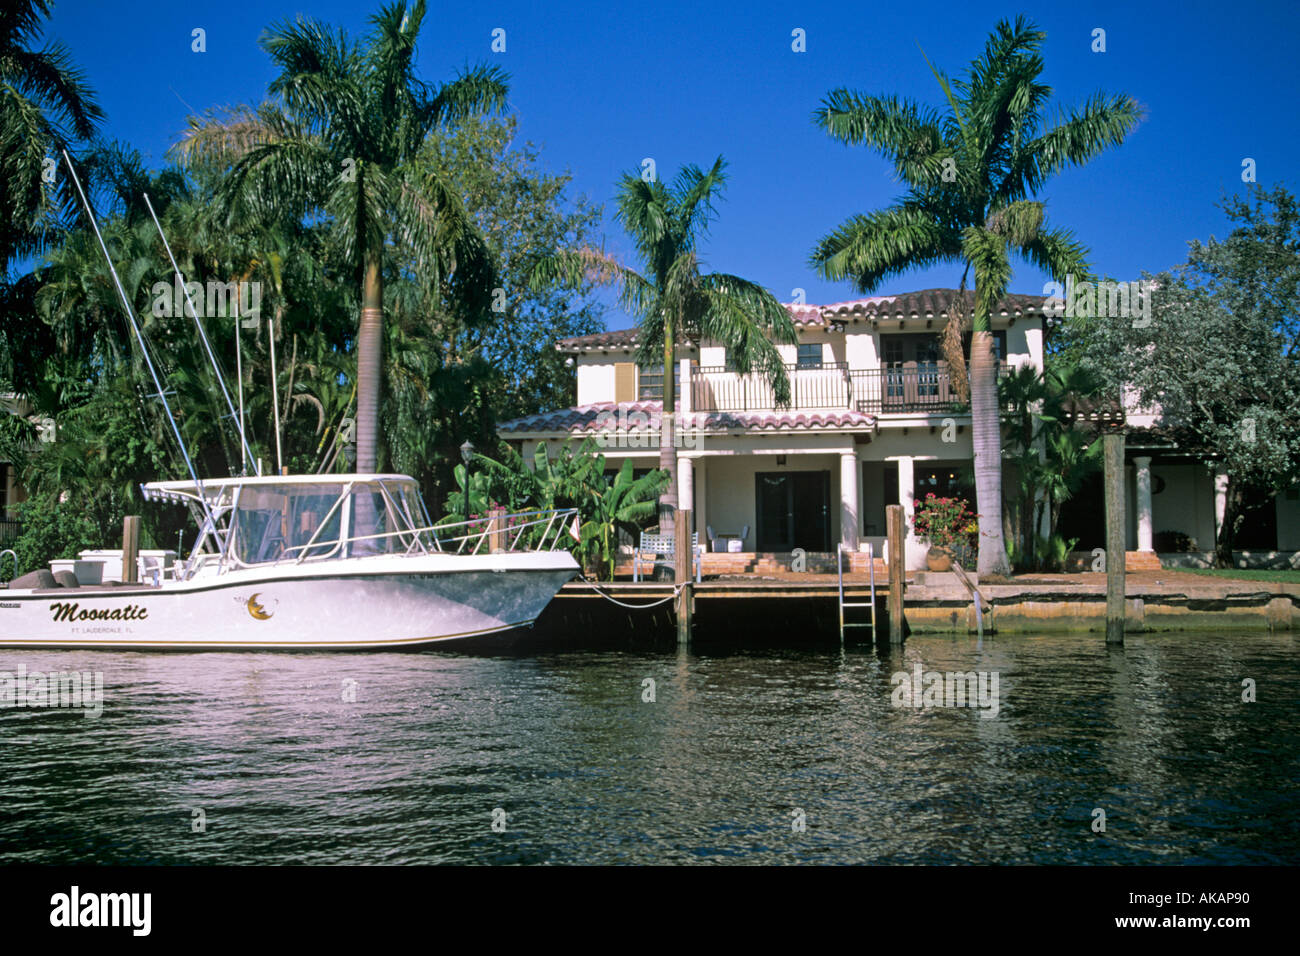 Luxury Homes With Yacht Moored In Inter Coastal Waterway